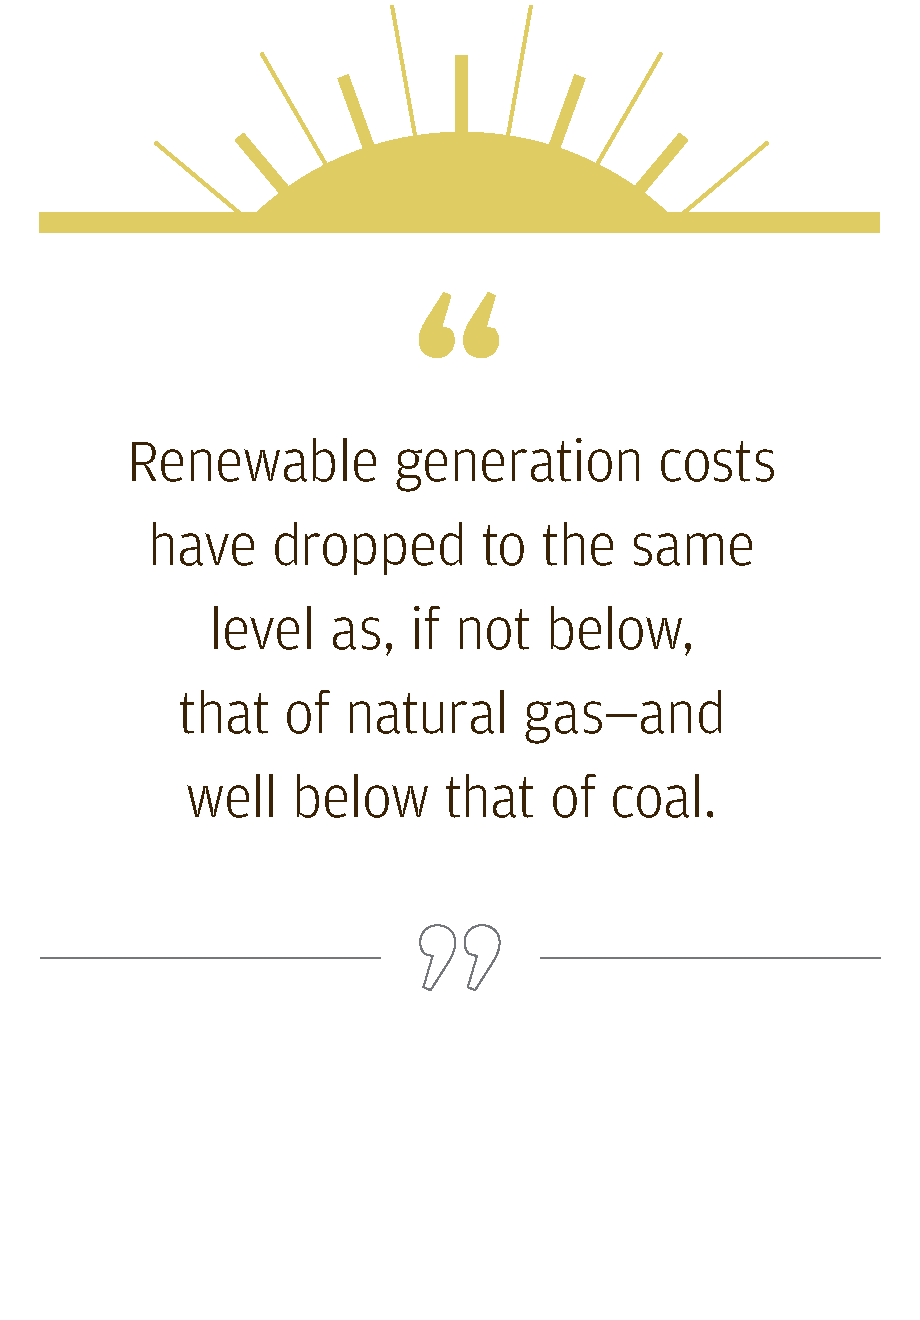 Renewable generation costs have dropped to the same level as, if not below, that of natural gas—and well below that of coal.